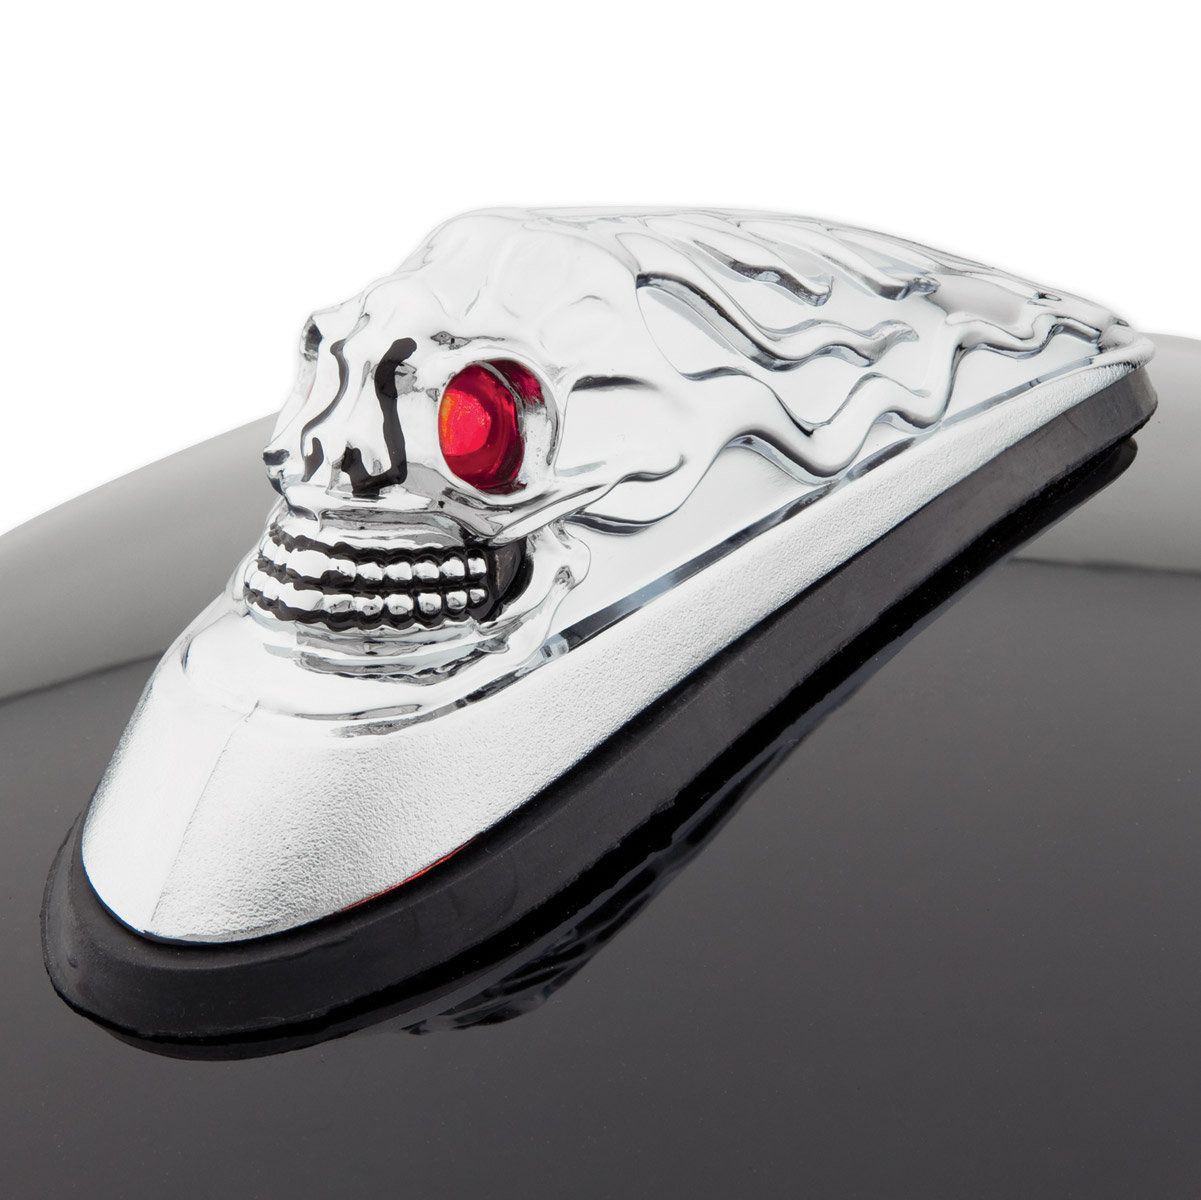 J&P Cycles® Skull head Front Fender Ornament with Illuminated Eyes